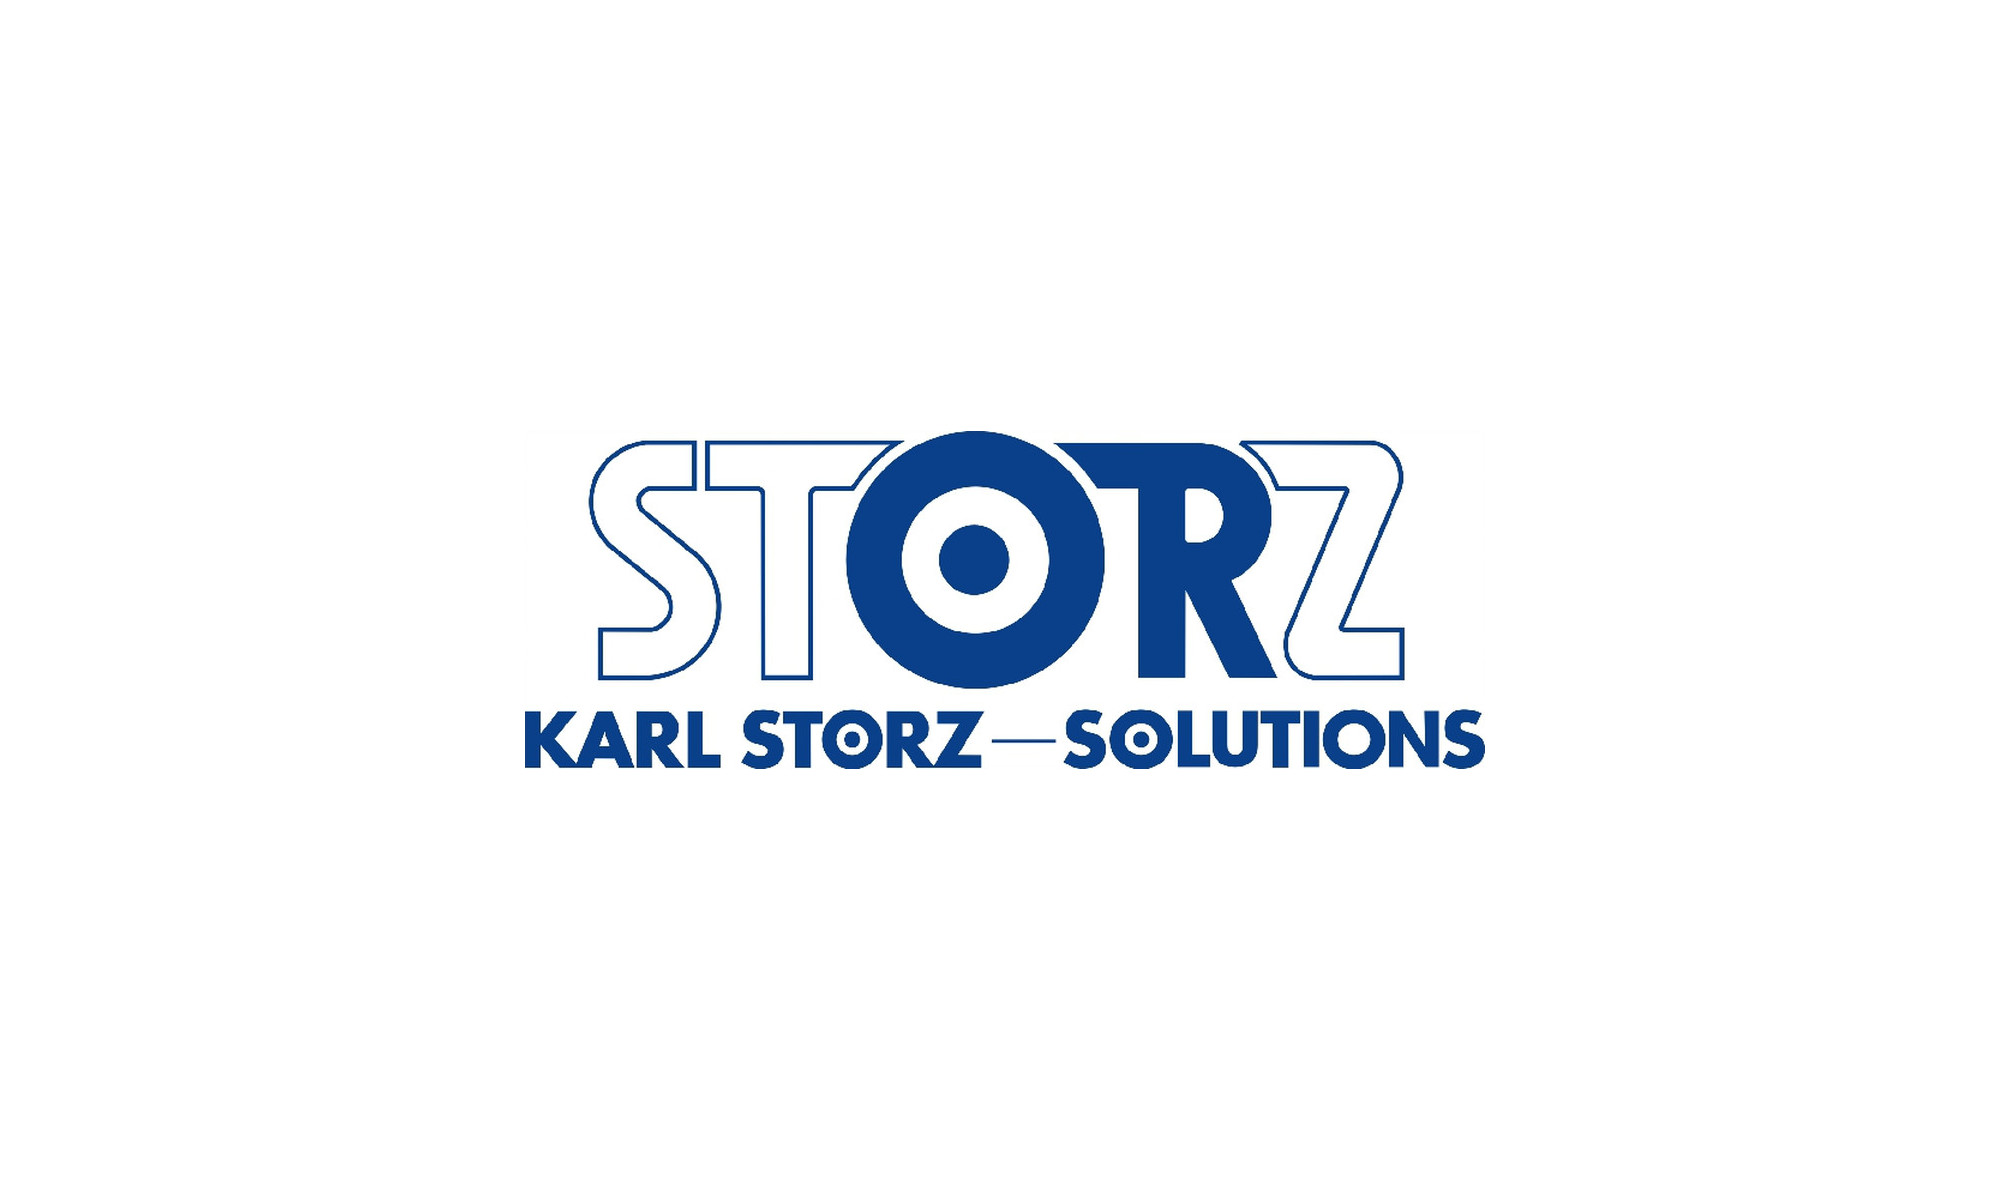 Karl Storz Solutions